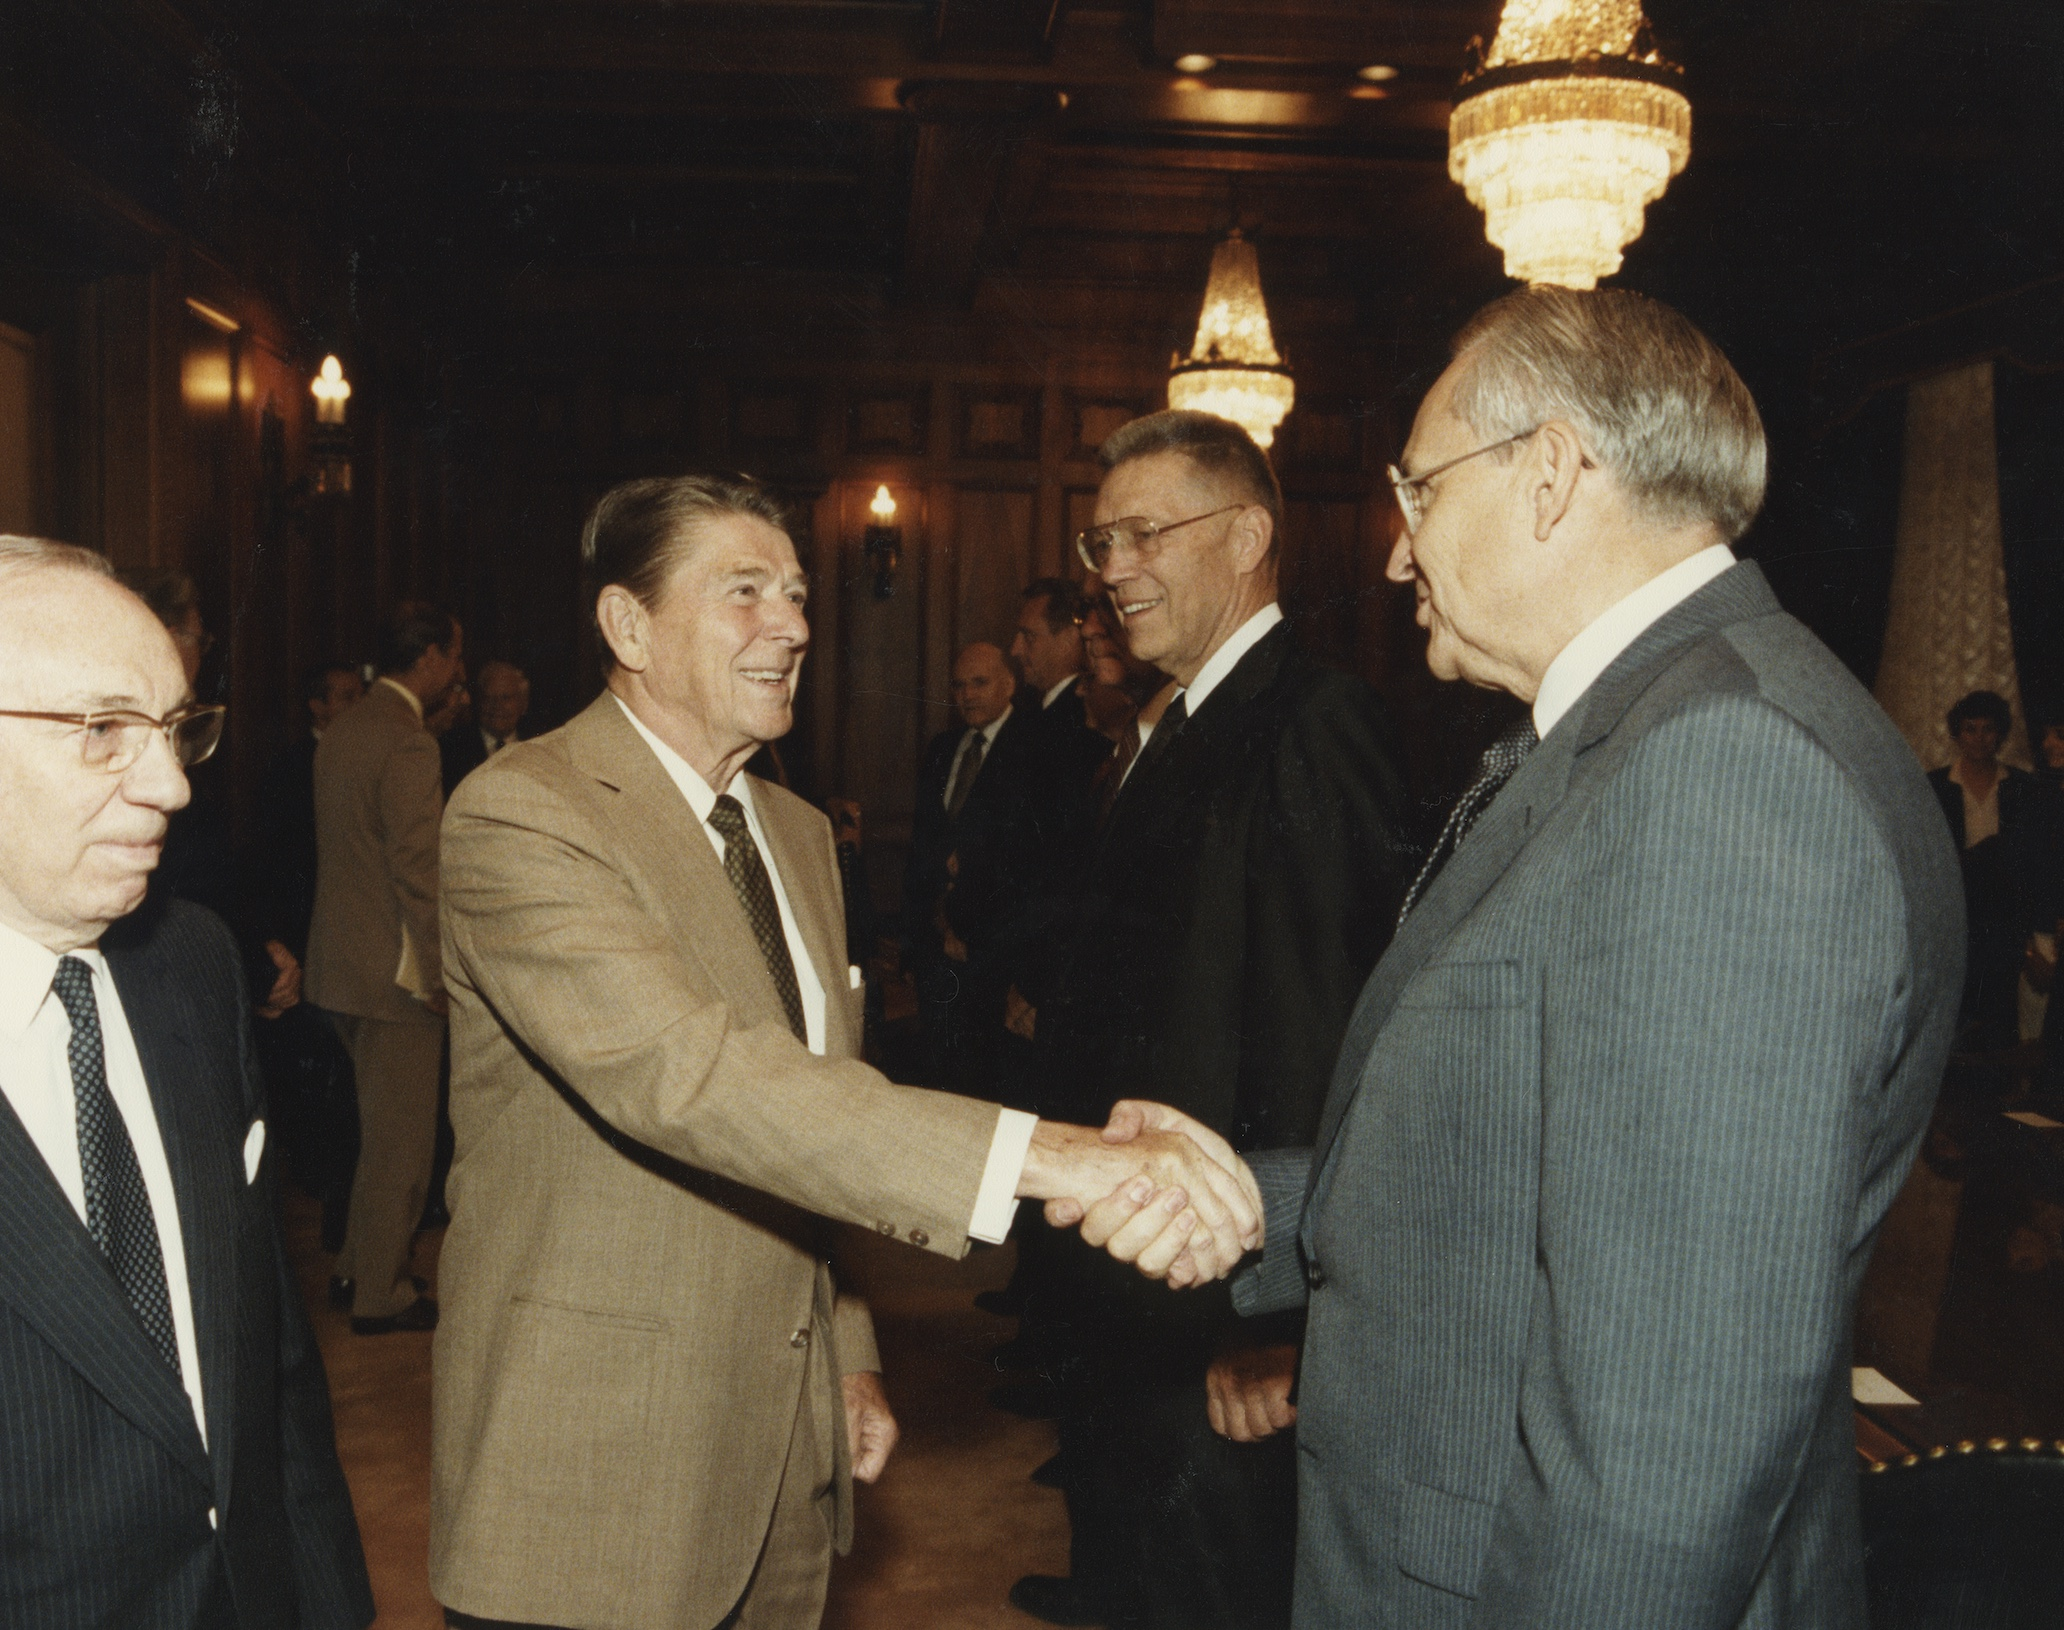 Elder L. Tom Perry shakes hands with U.S. President Ronald Reagan in Sept. 1984. Also seen are President Gordon B. Hinckley, left, and Elder Bruce R. McConkie, middle.